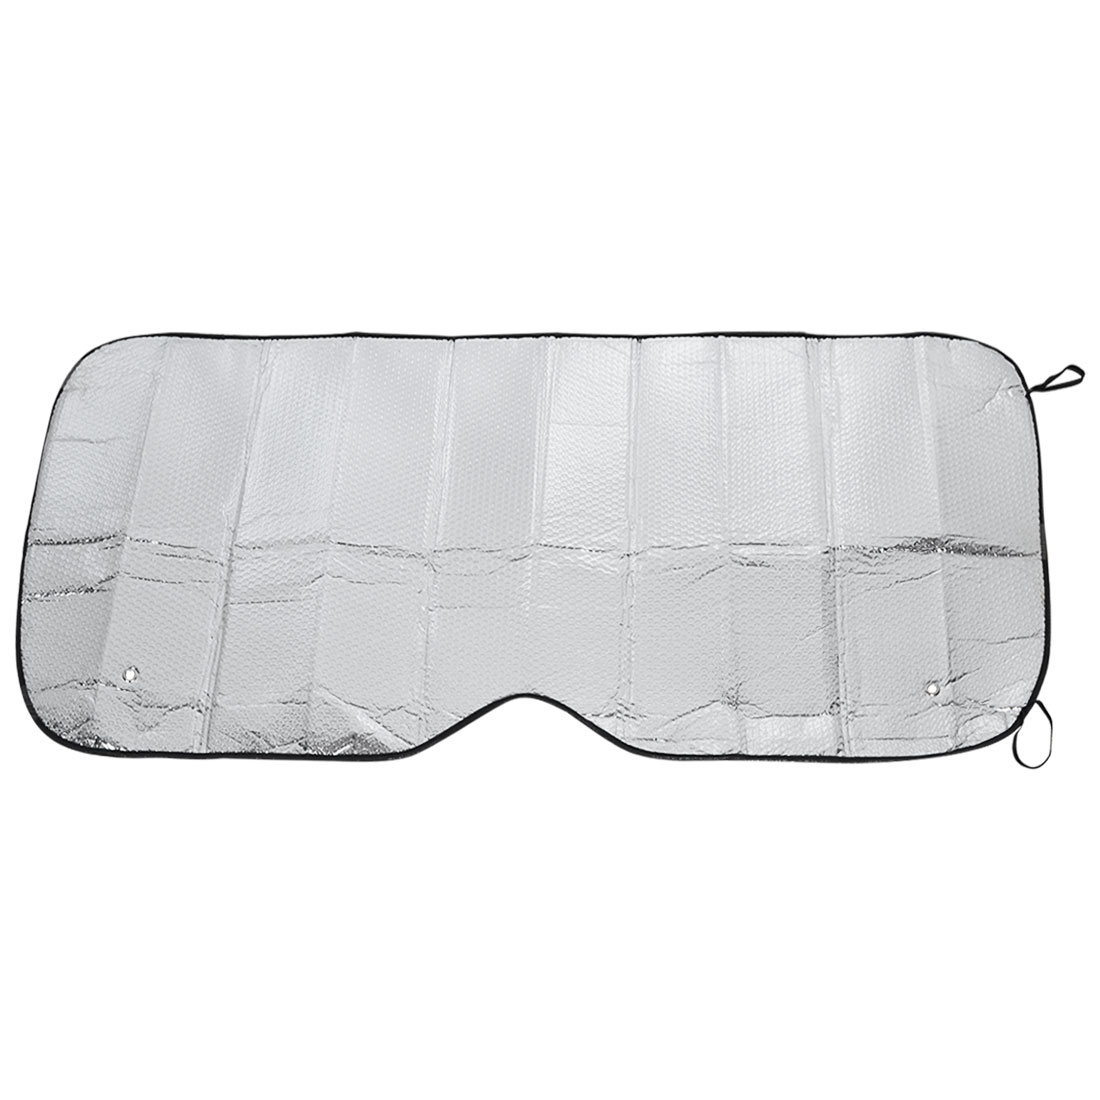 130cm x 68cm Auto Retractable Roll Up Side Window Sun Shade Silver Tone w Suction Cups